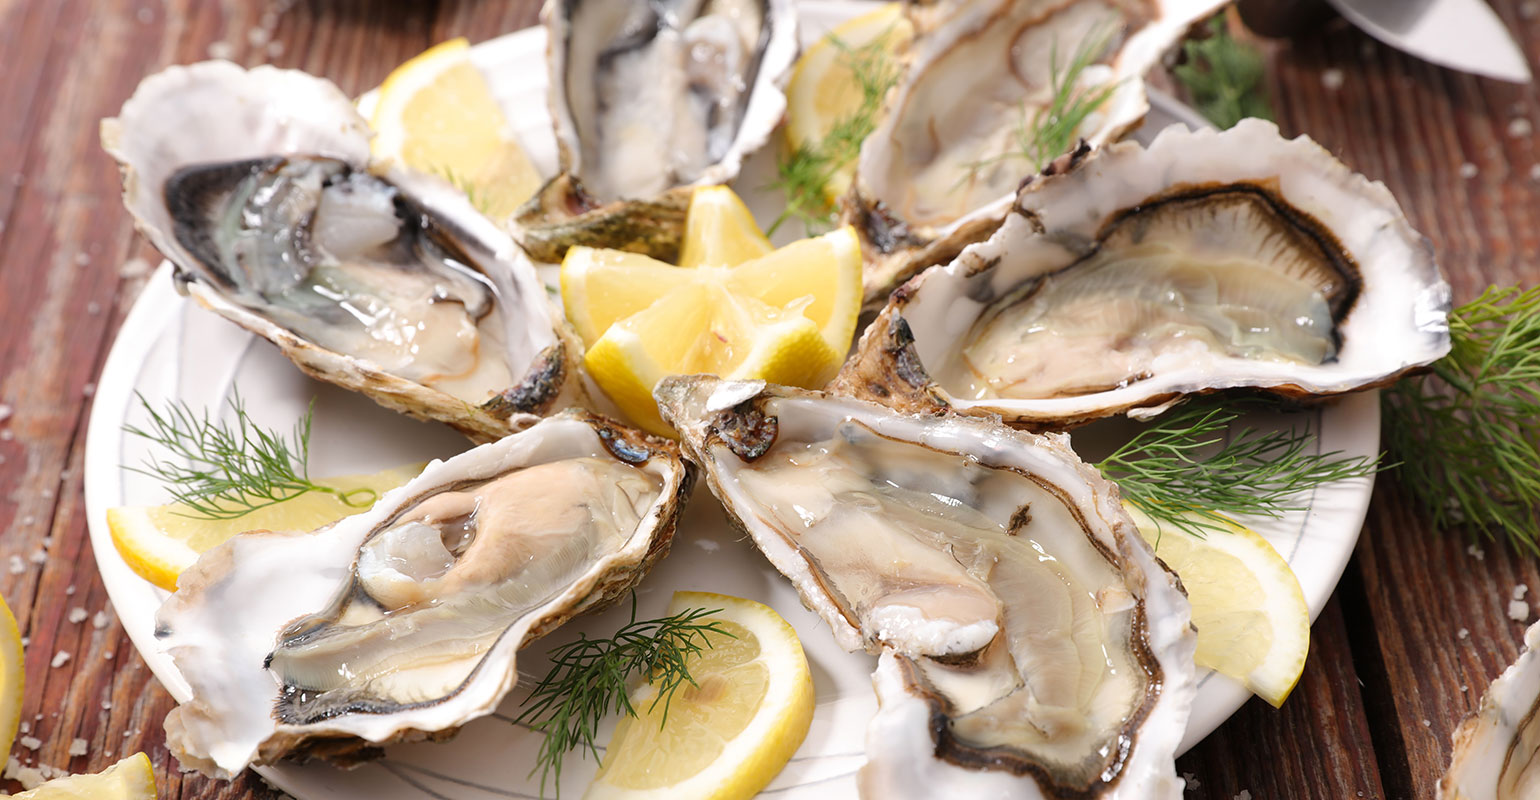 Tomales Bay oyster farms health advisory lifted after Norovirus scare